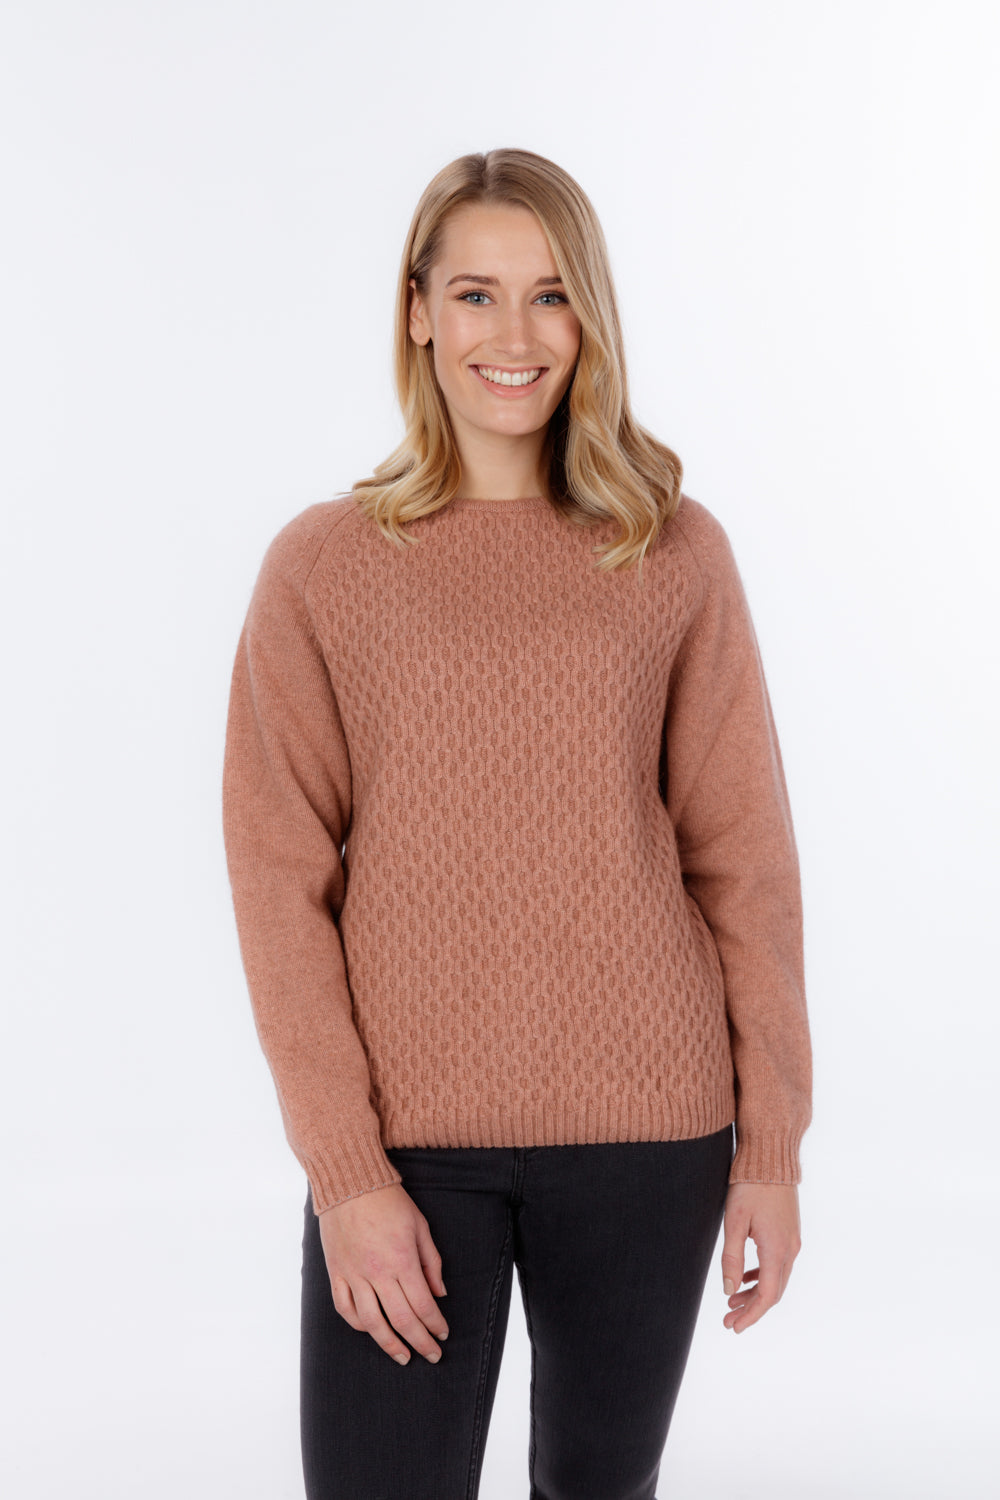 ARRAN KNIT SWEATER - Woolshed Gallery